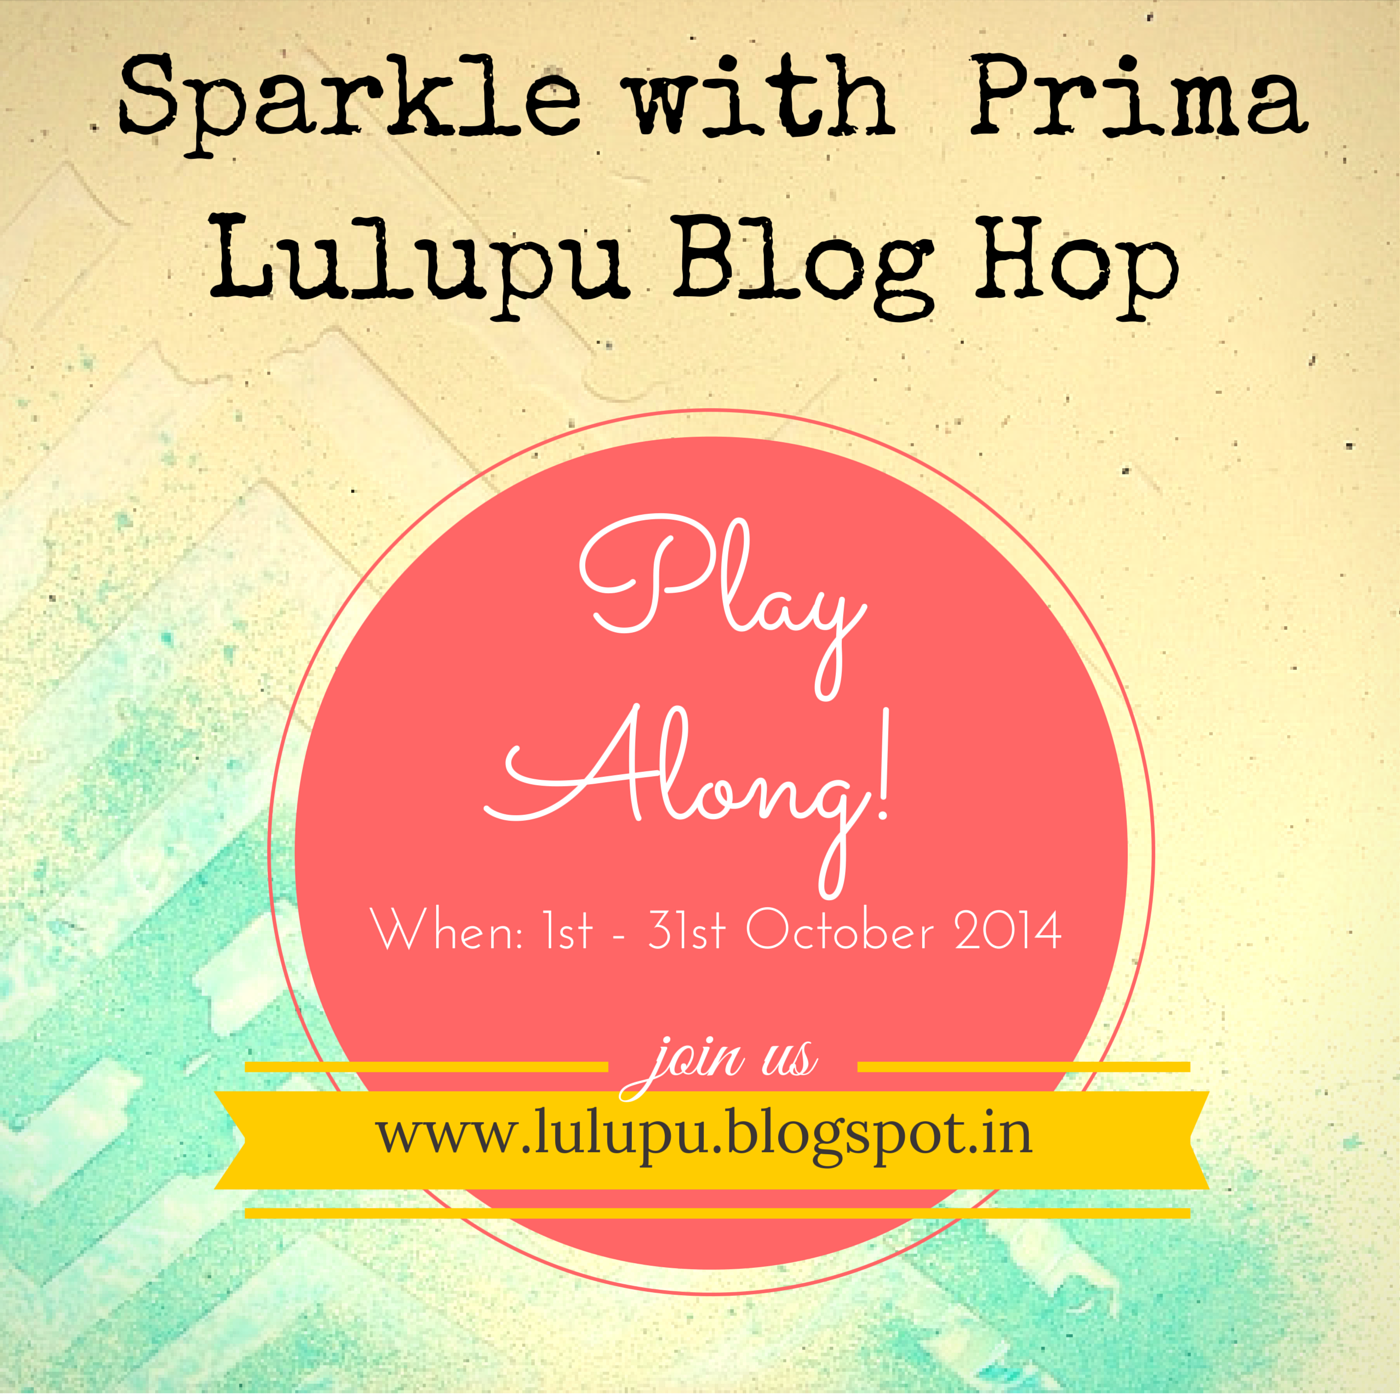 http://lulupu.blogspot.in/2014/10/sparkle-with-prima-at-lulupu-blog-hop.html